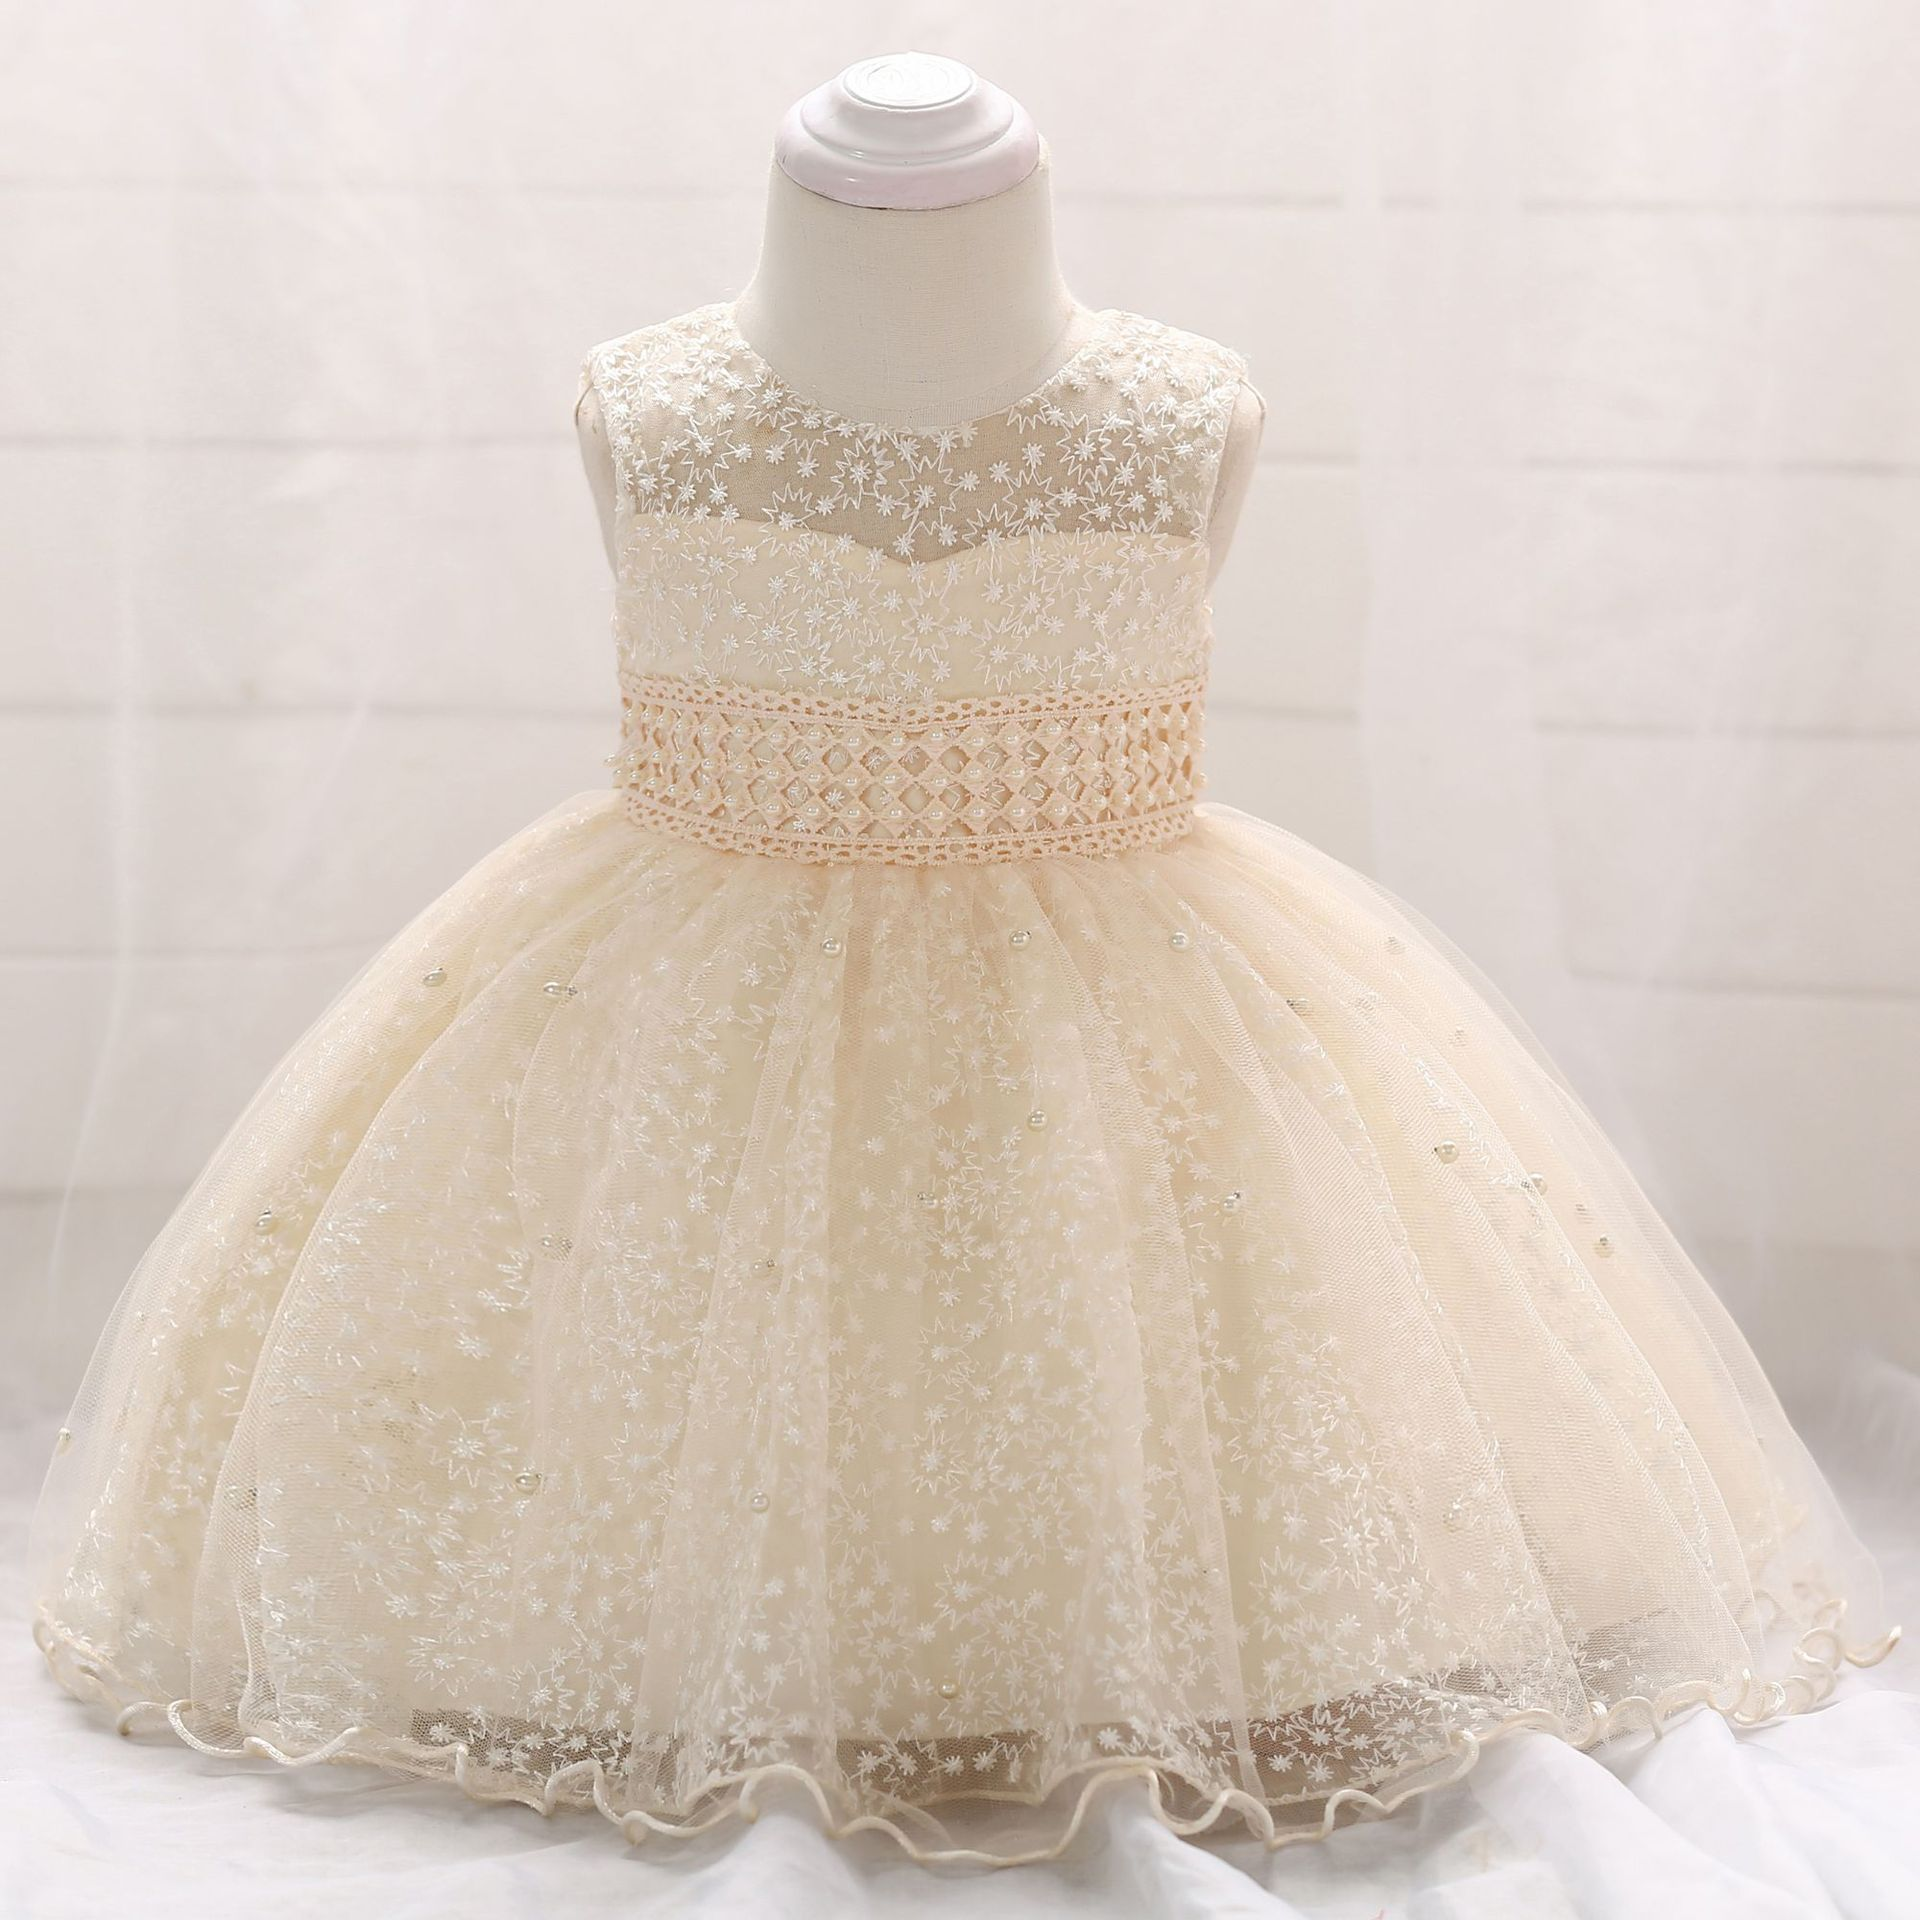 0-24M Newborn Baby   Flower     Girl     Dress   Fashion Lace Colorful Puffy Princes   Girl     Dresses   For Wedding